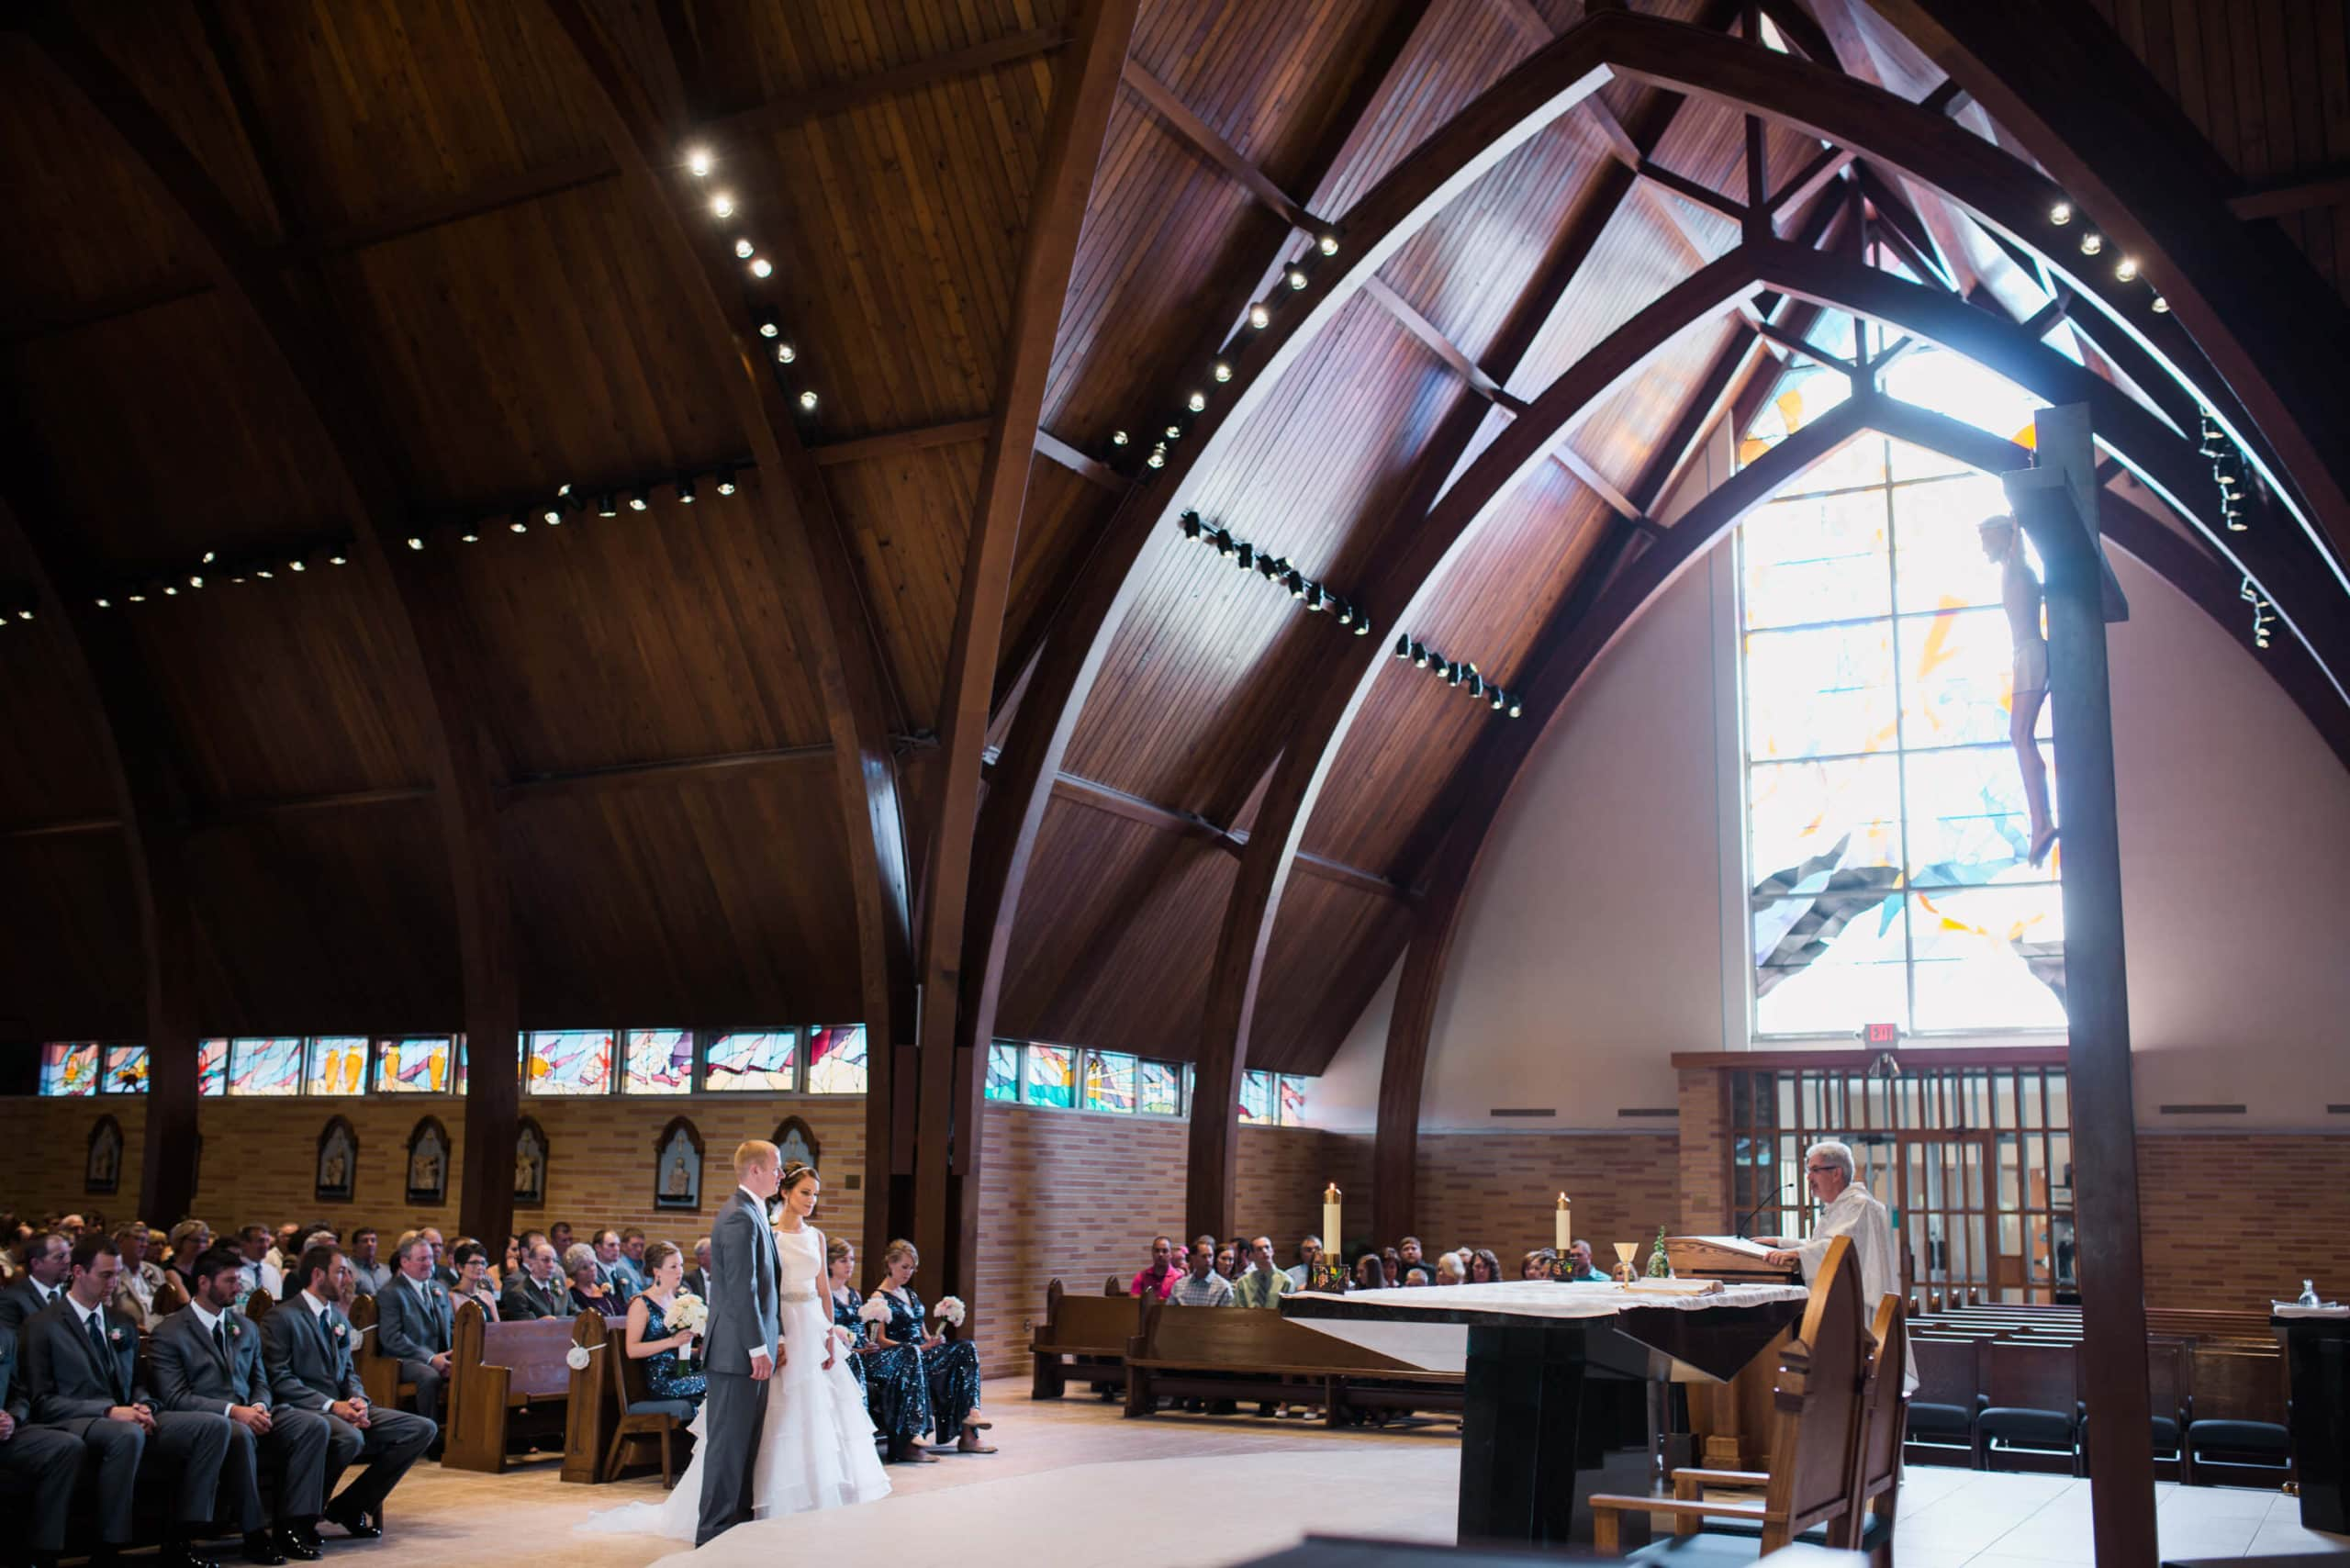 bride and groom standing at the altar for a catholic wedding ceremony